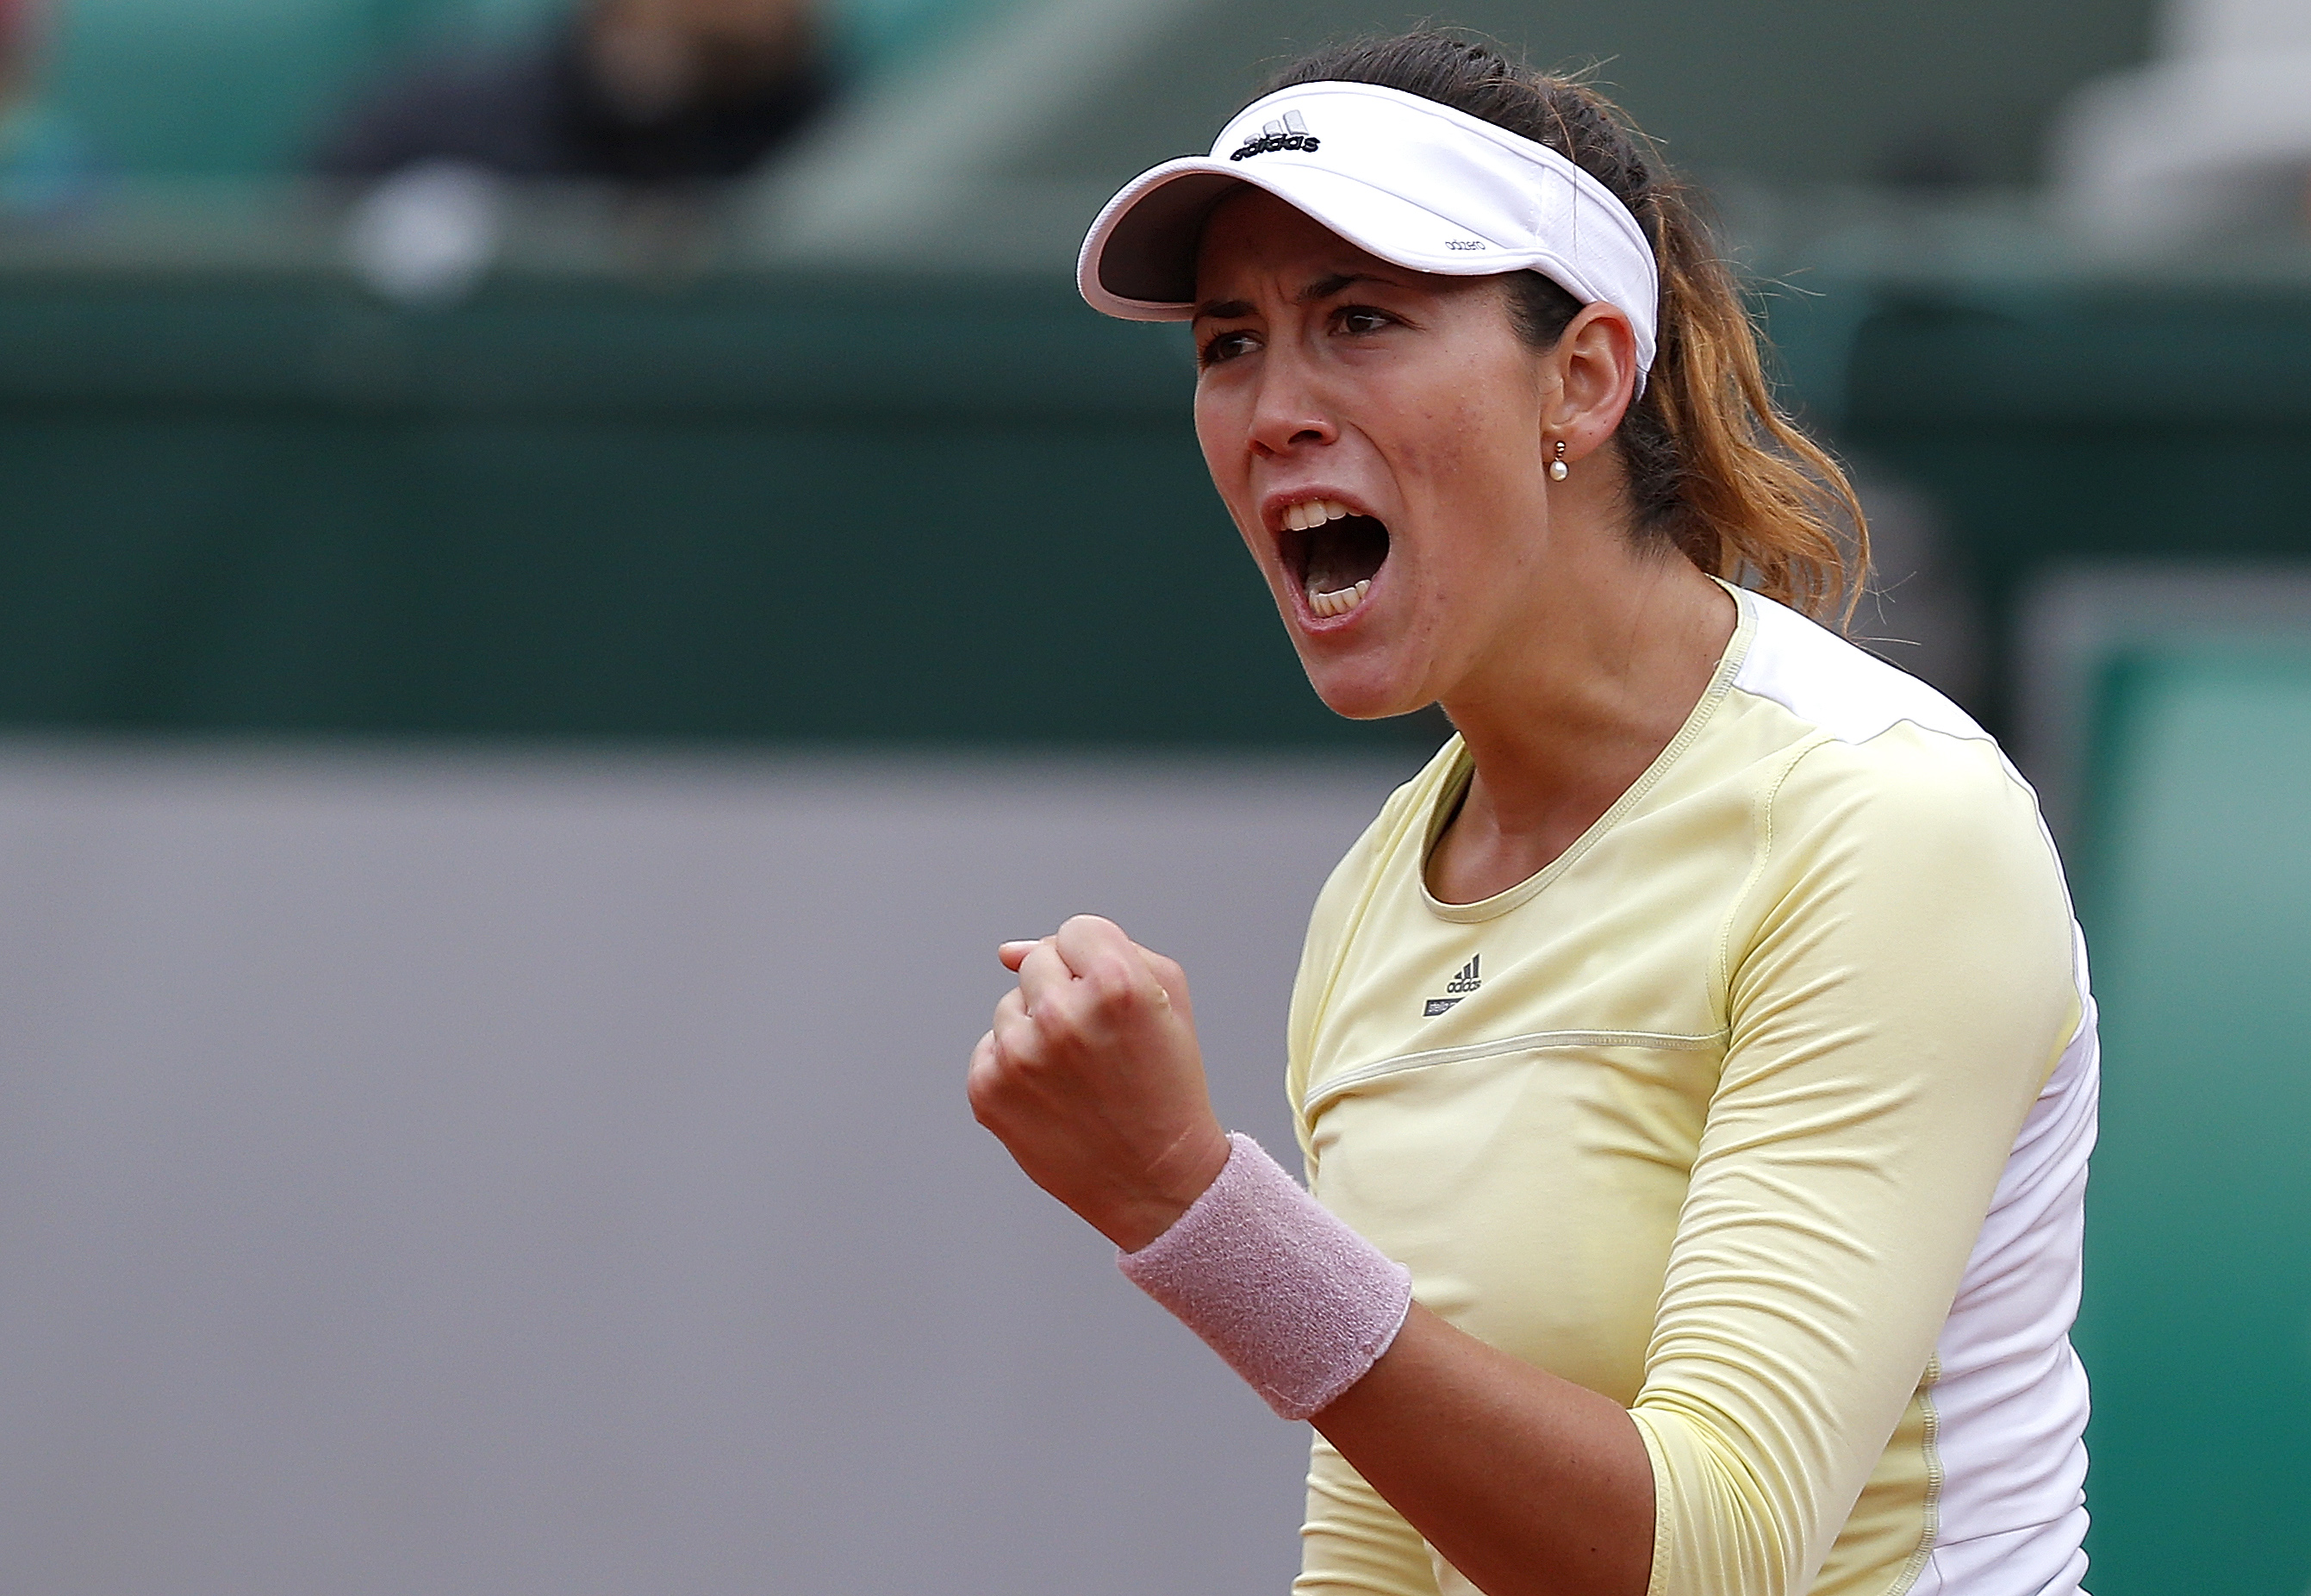 Spain's Garbine Muguruza clenches her fist  as she plays Australia's Samantha Stosur during their semifinal match of the French Open tennis tournament at the Roland Garros stadium, Friday, June 3, 2016 in Paris. (AP Photo/Michel Euler)